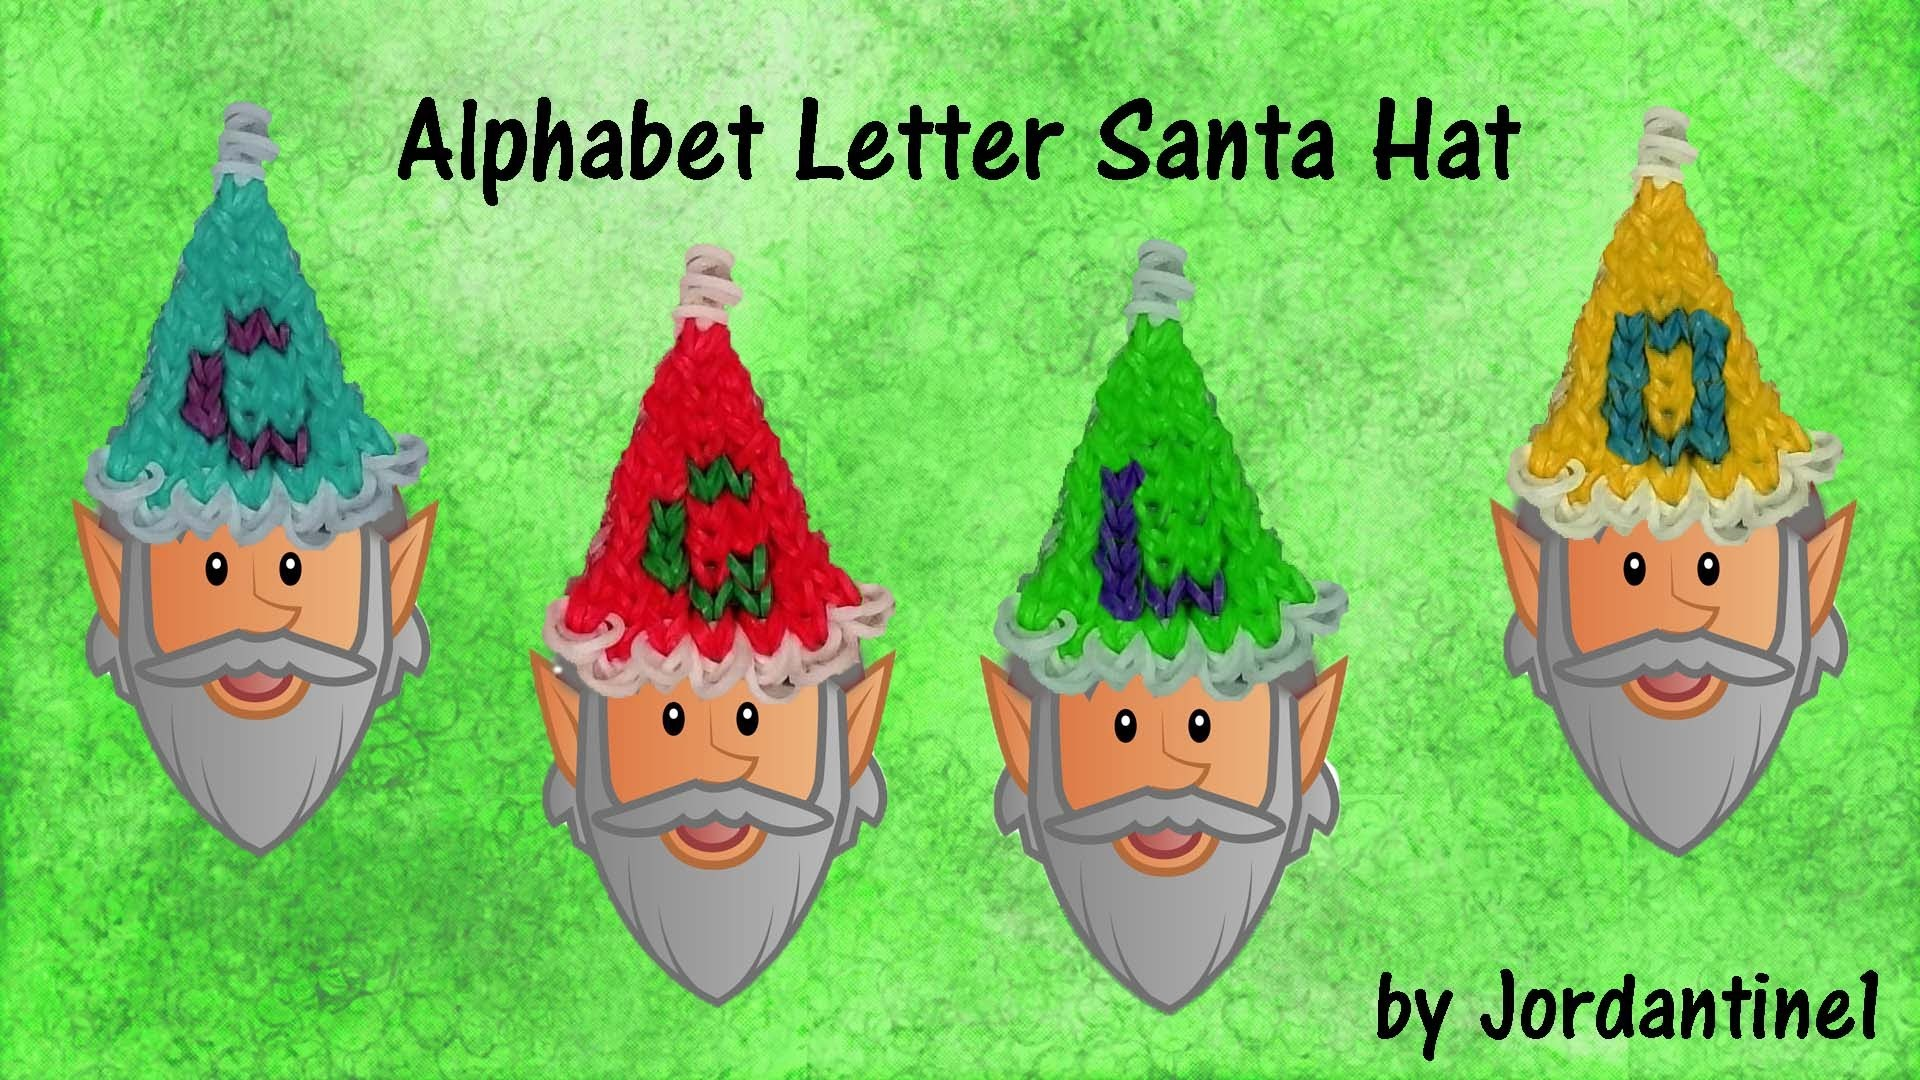 New Christmas Alphabet Letter Santa. Elf Hat Charm - Rainbow Loom. Alpha Loom - Quick & Easy